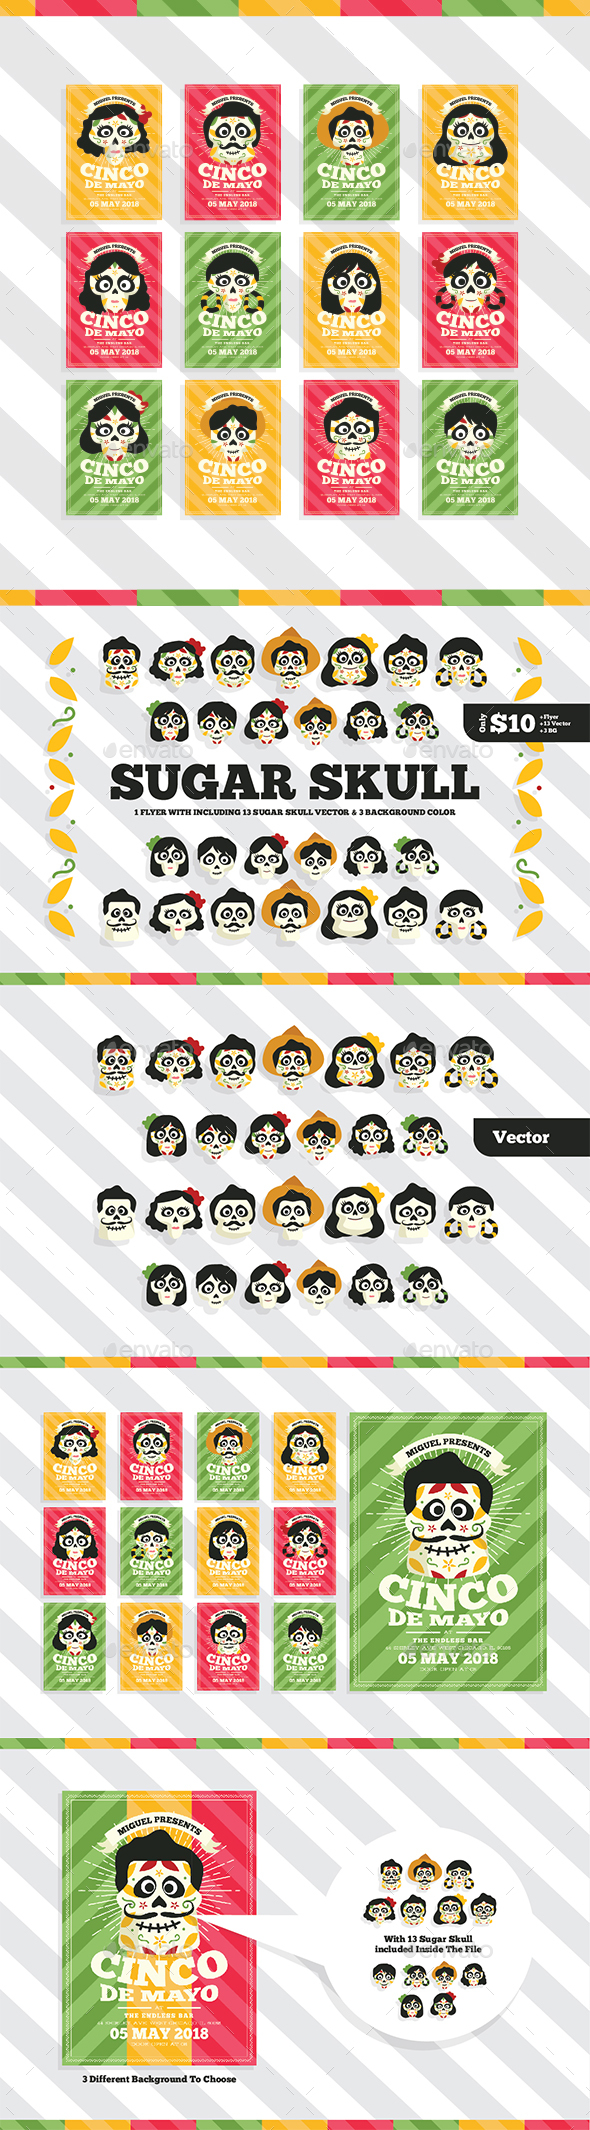 Sugar Skull Flyer - Events Flyers